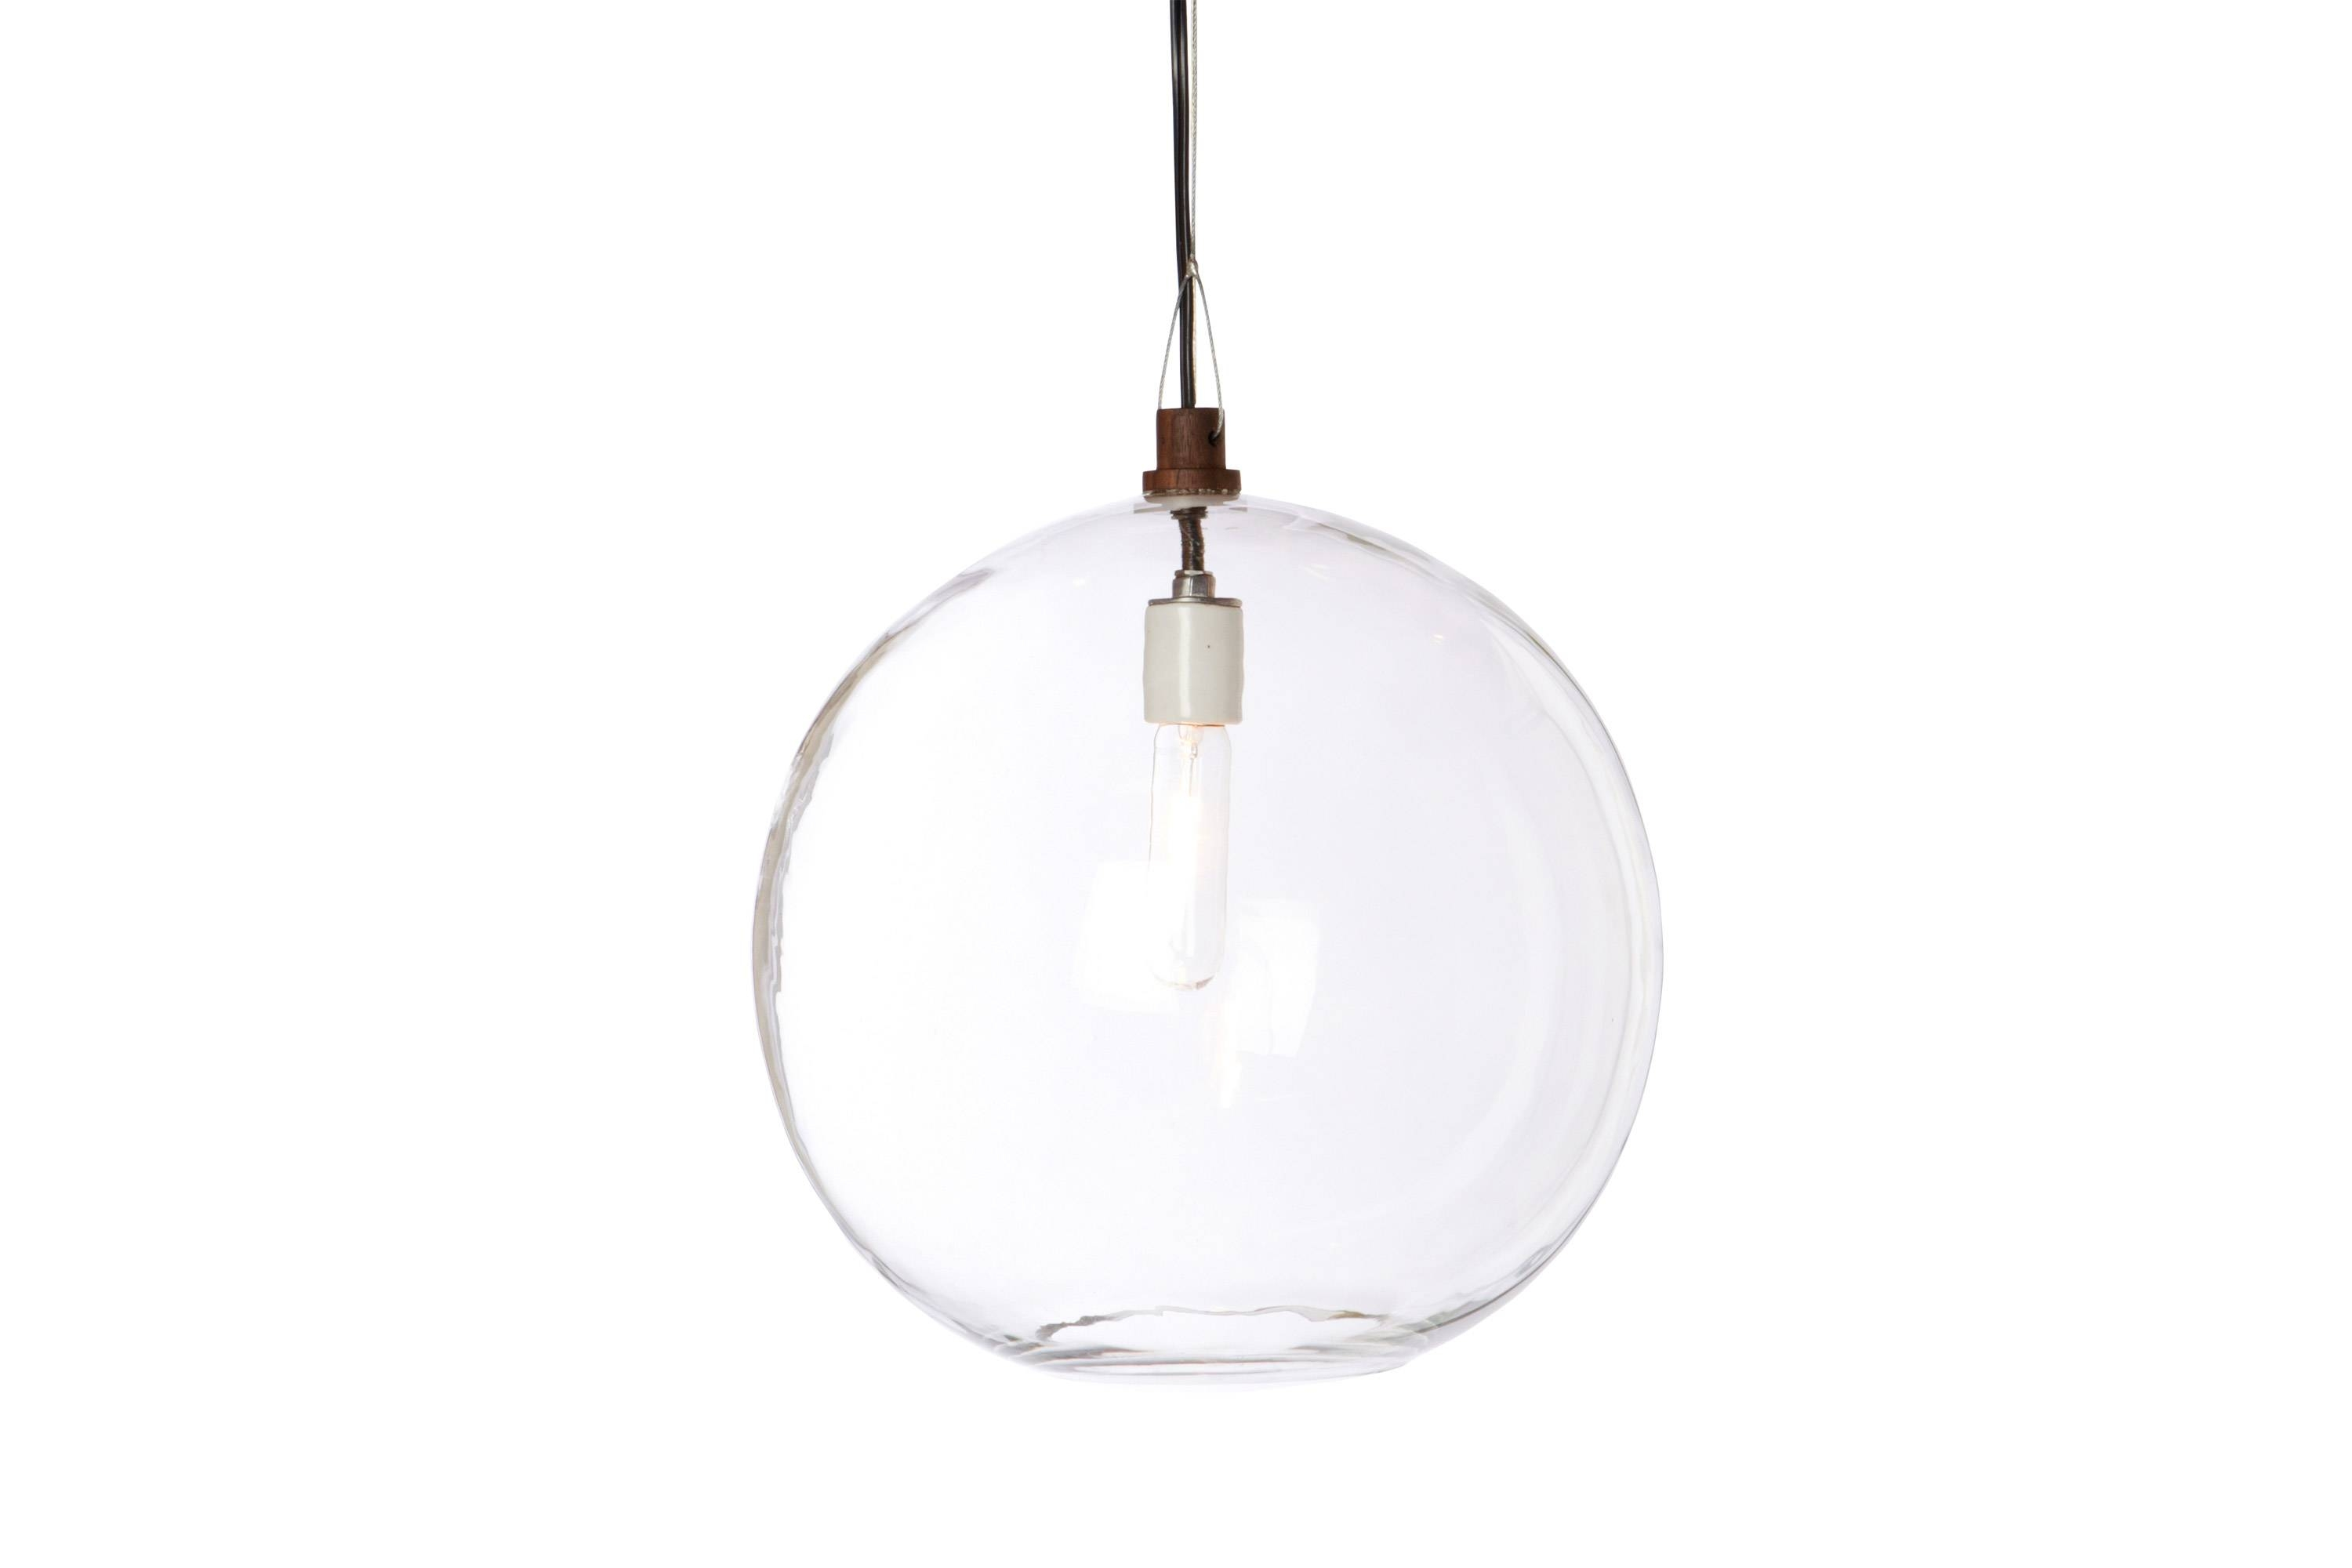 Pendant with Clear Globe Pendant Lights (Image 12 of 15)